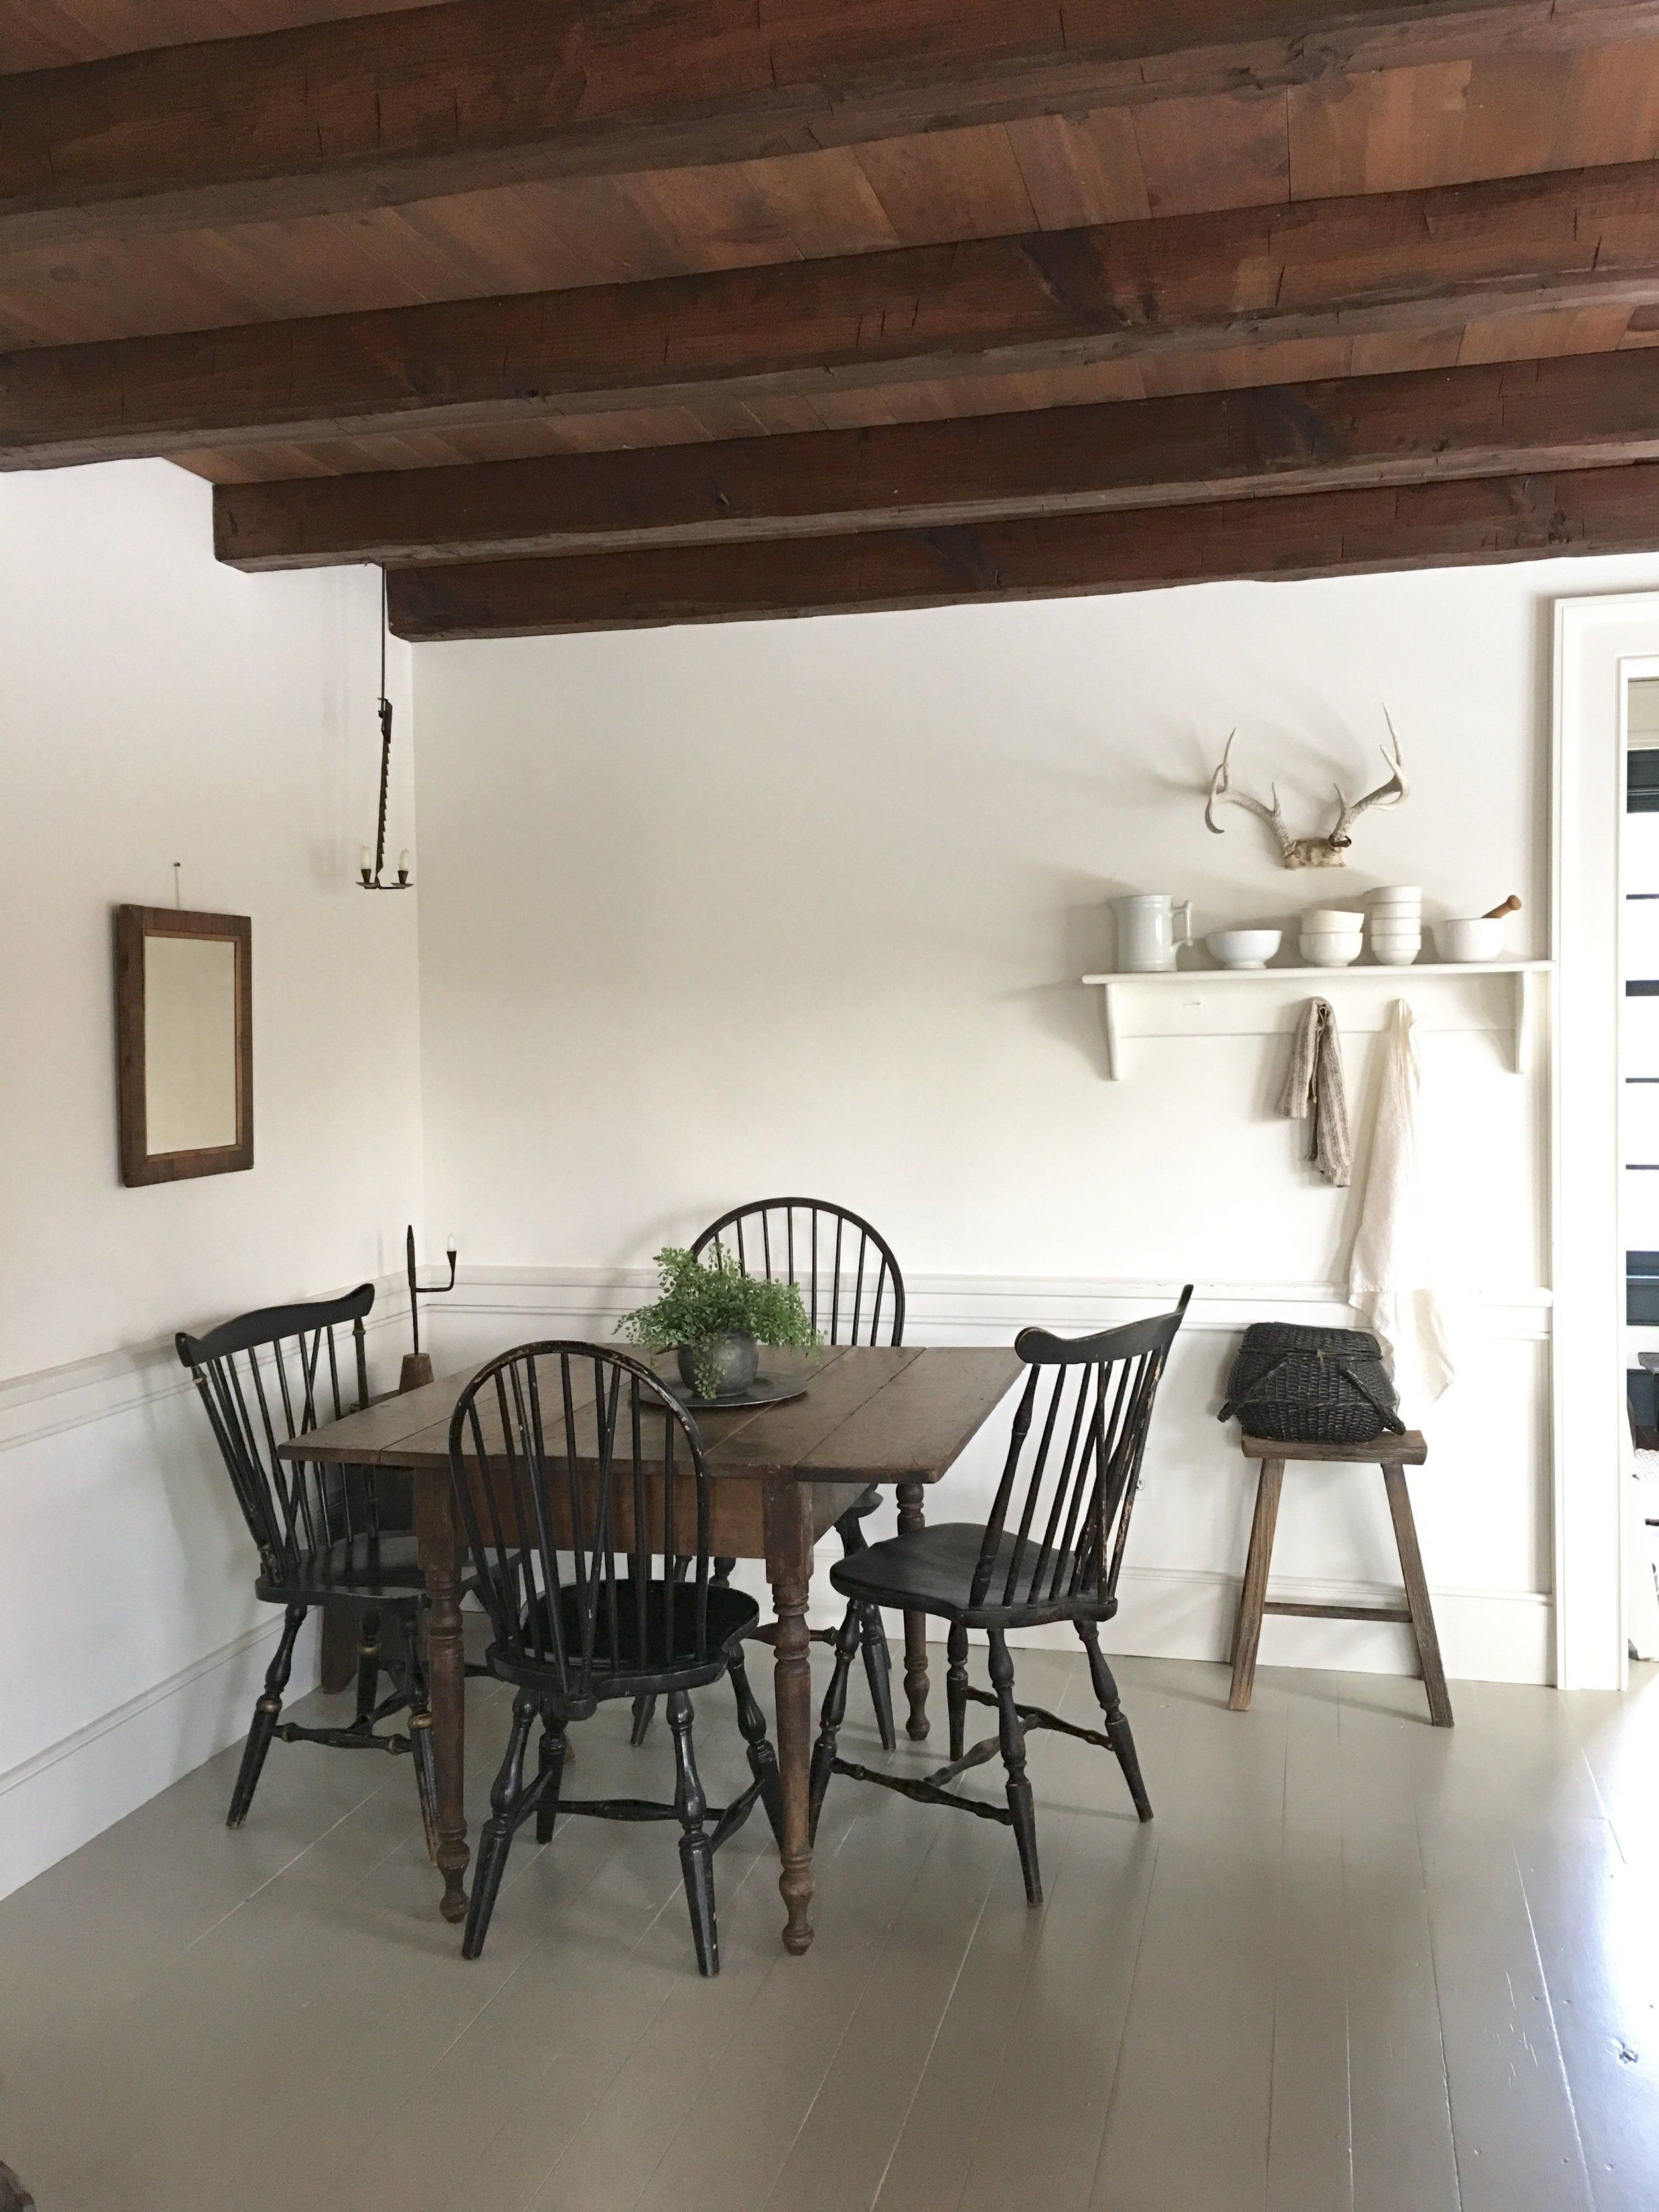 Decorating With Antlers | Cabin Kitchen | Decor, Contemporary Rustic Inside Current Lillard 3 Piece Breakfast Nook Dining Sets (Photo 16 of 20)